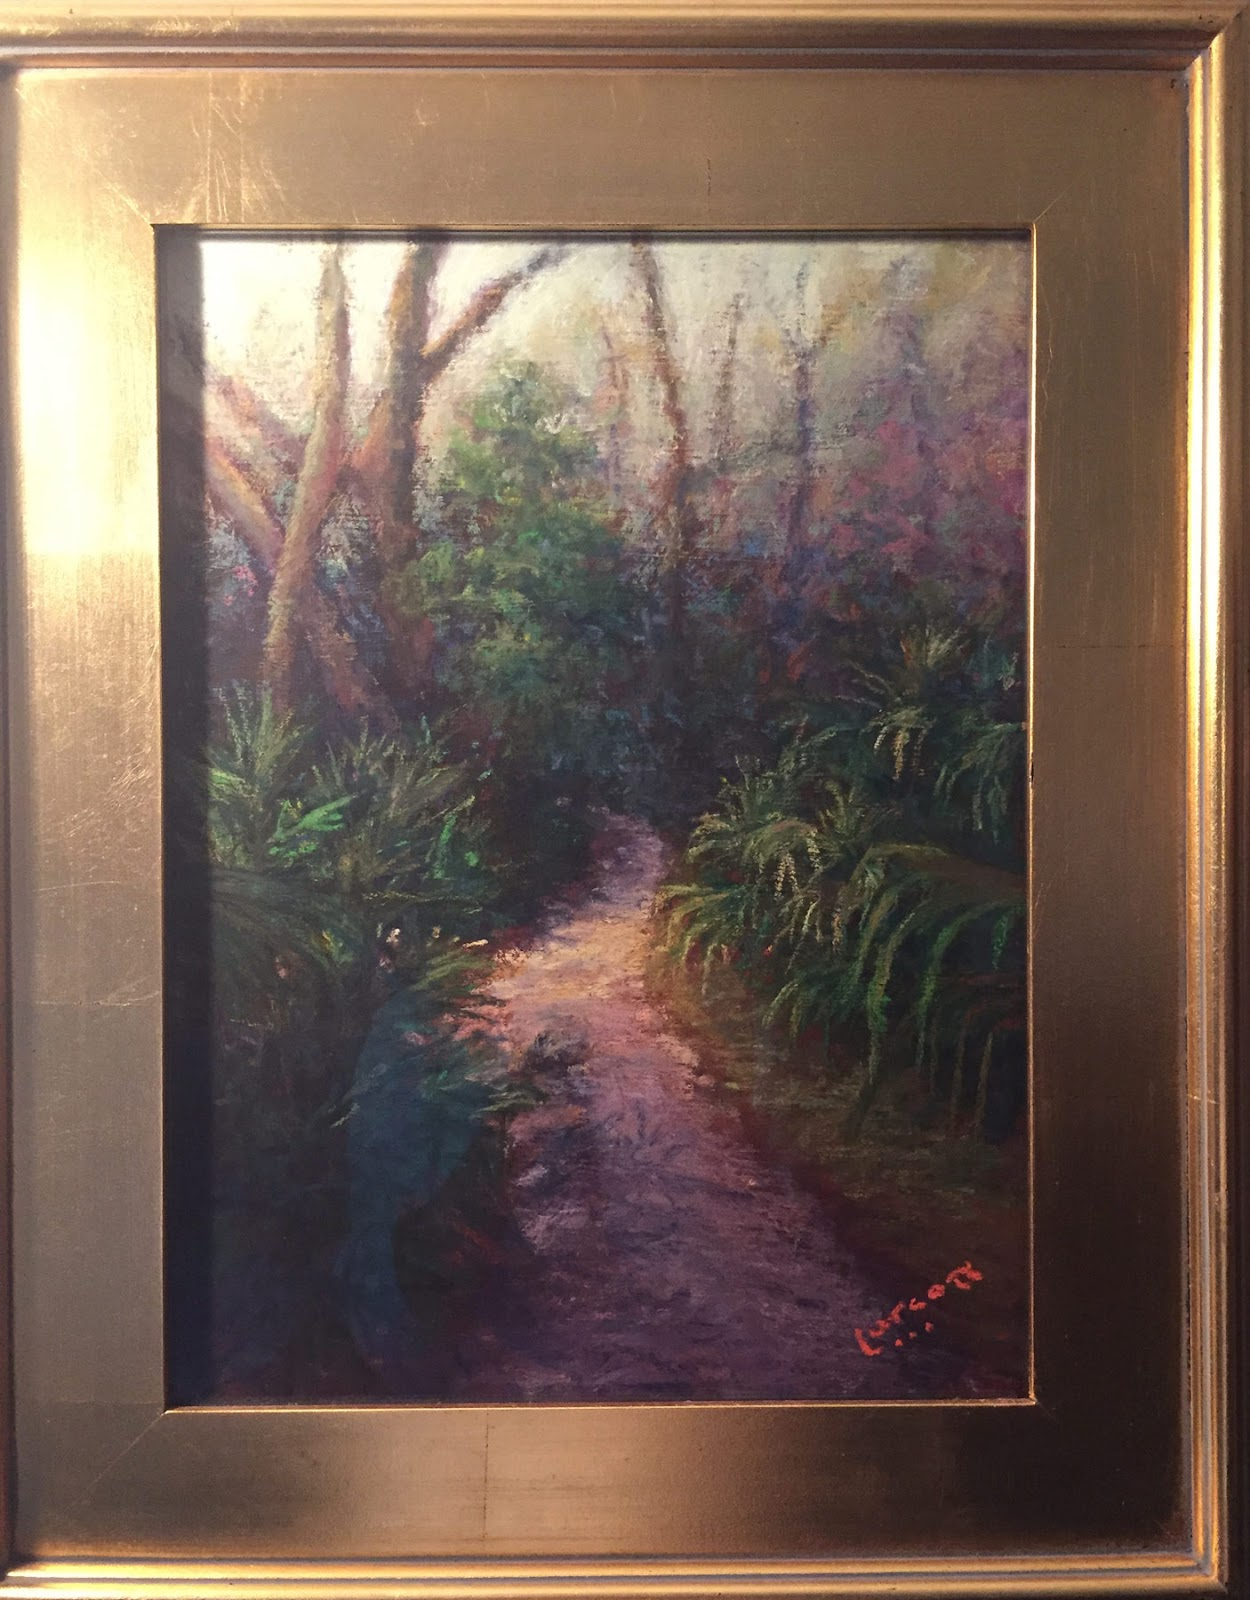 Art 18 Mystical Moment 16x12 pastel.jpg